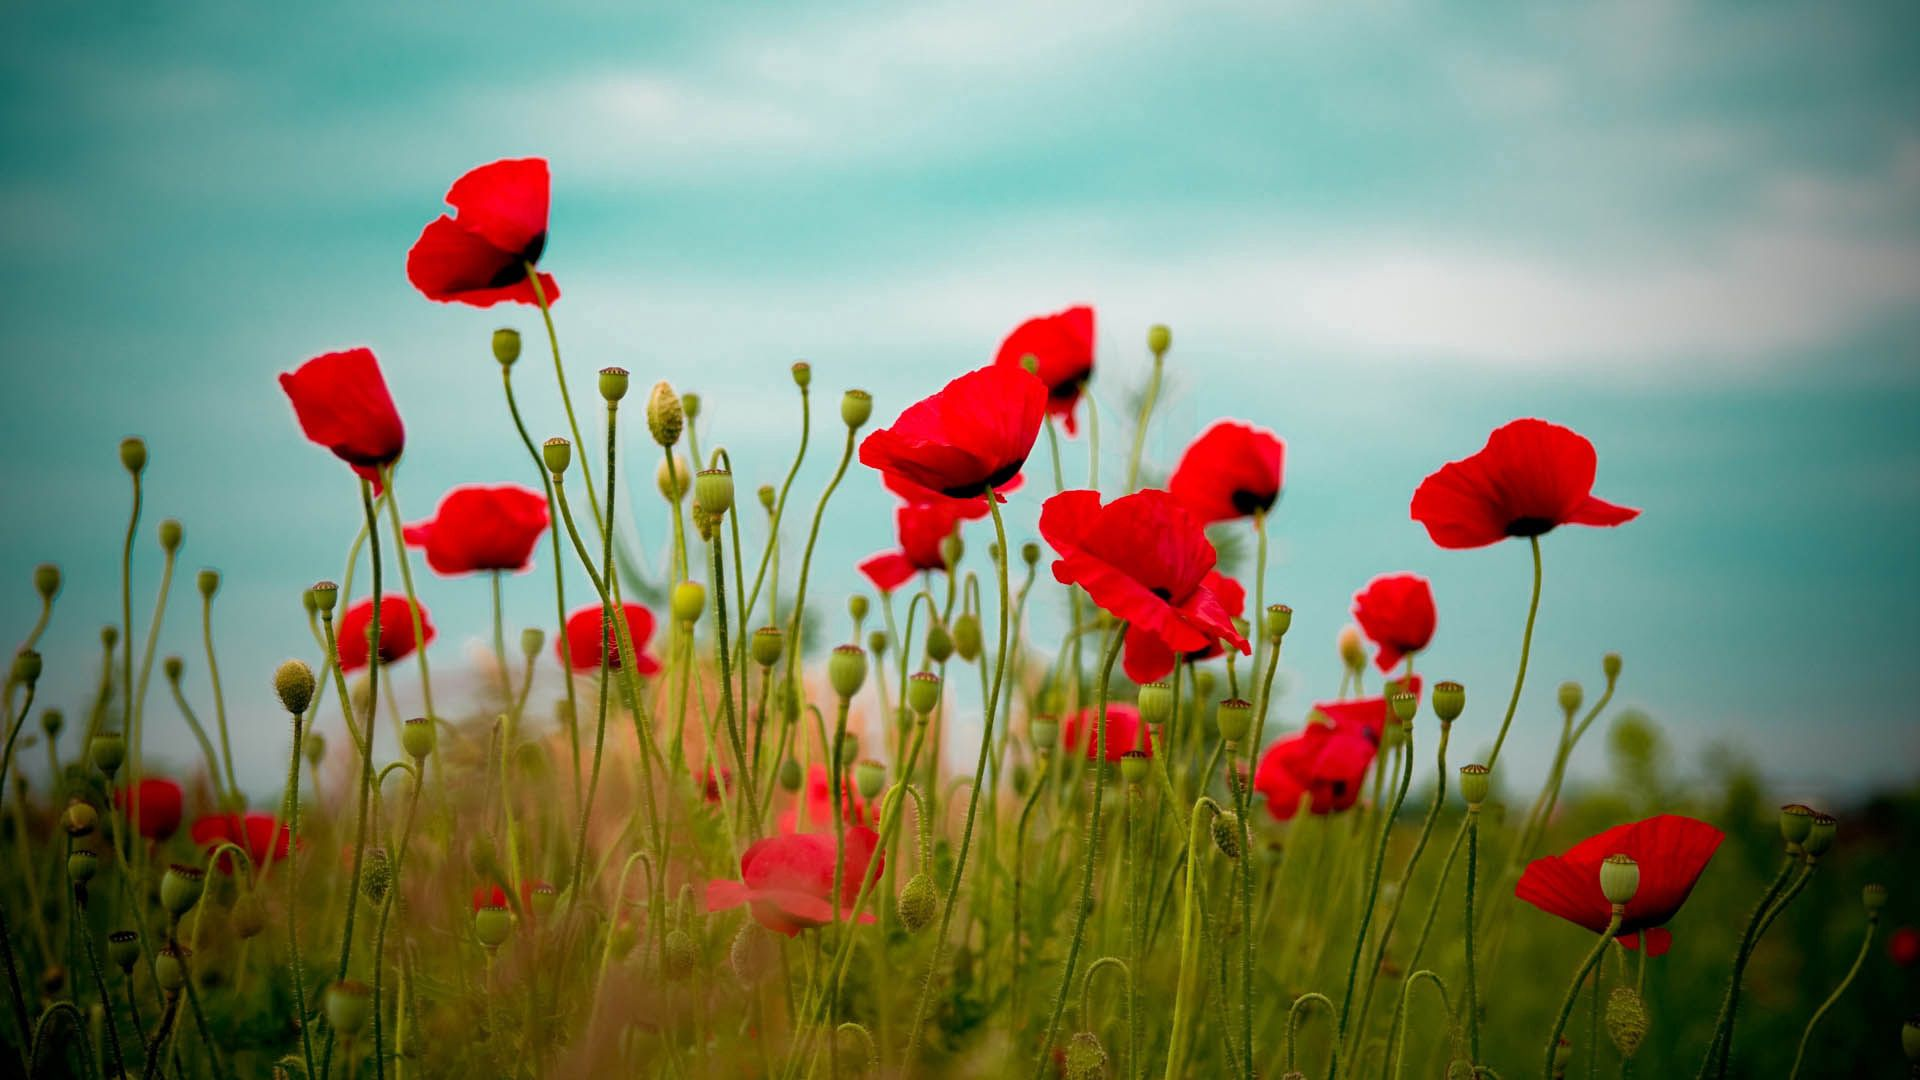 107295 Screensavers and Wallpapers Poppies for phone. Download Flowers, Grass, Poppies, Bloom, Flowering, Field pictures for free